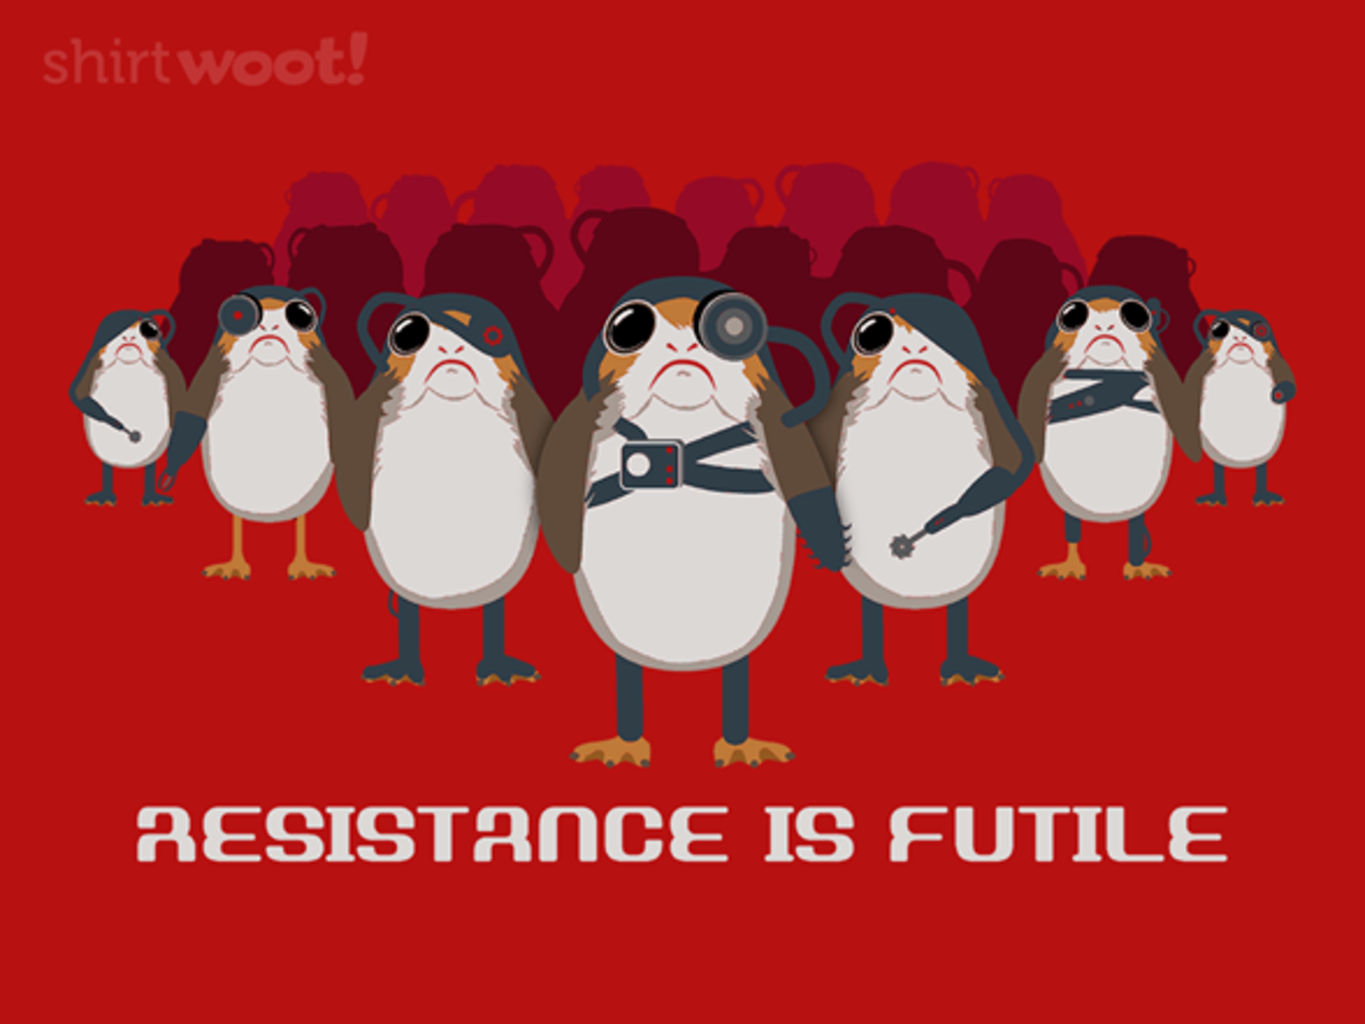 Woot!: Resistance is Futile